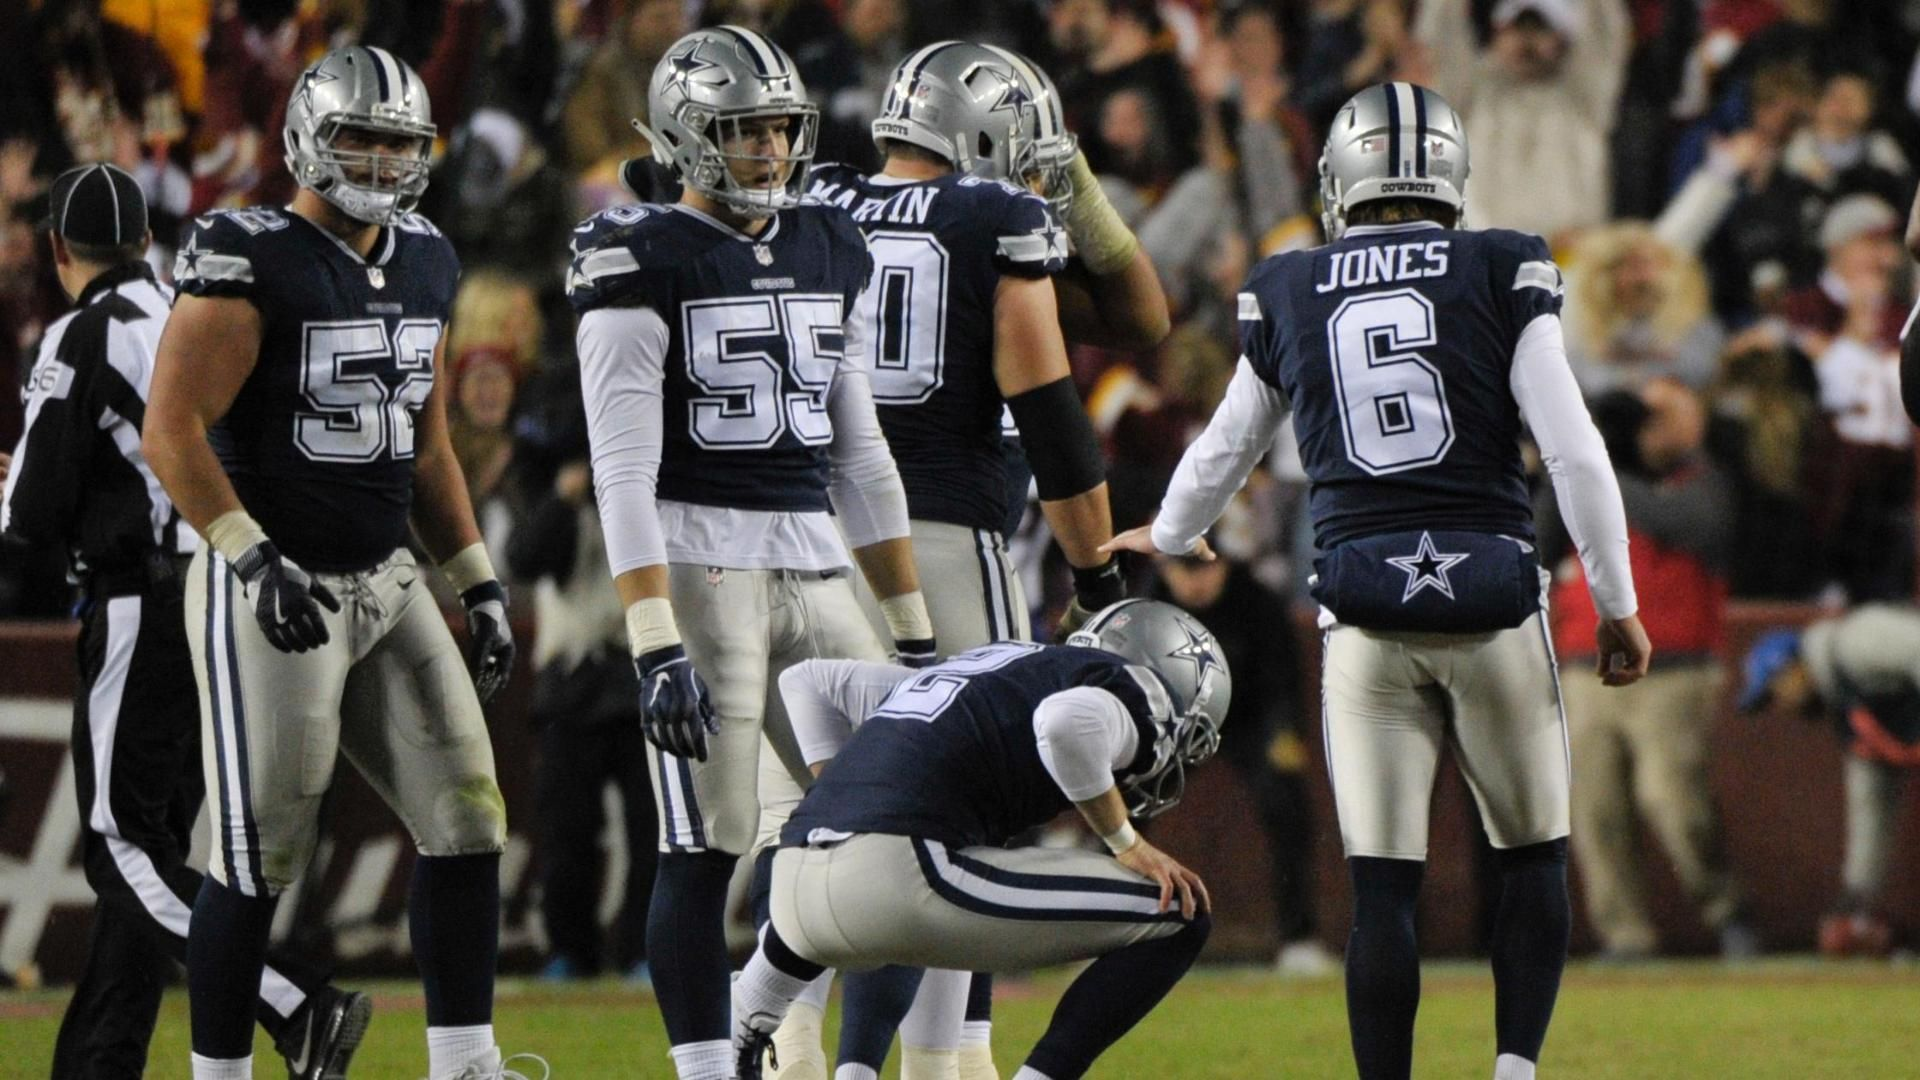 Maher's FG bangs off upright as Cowboys lose<br>